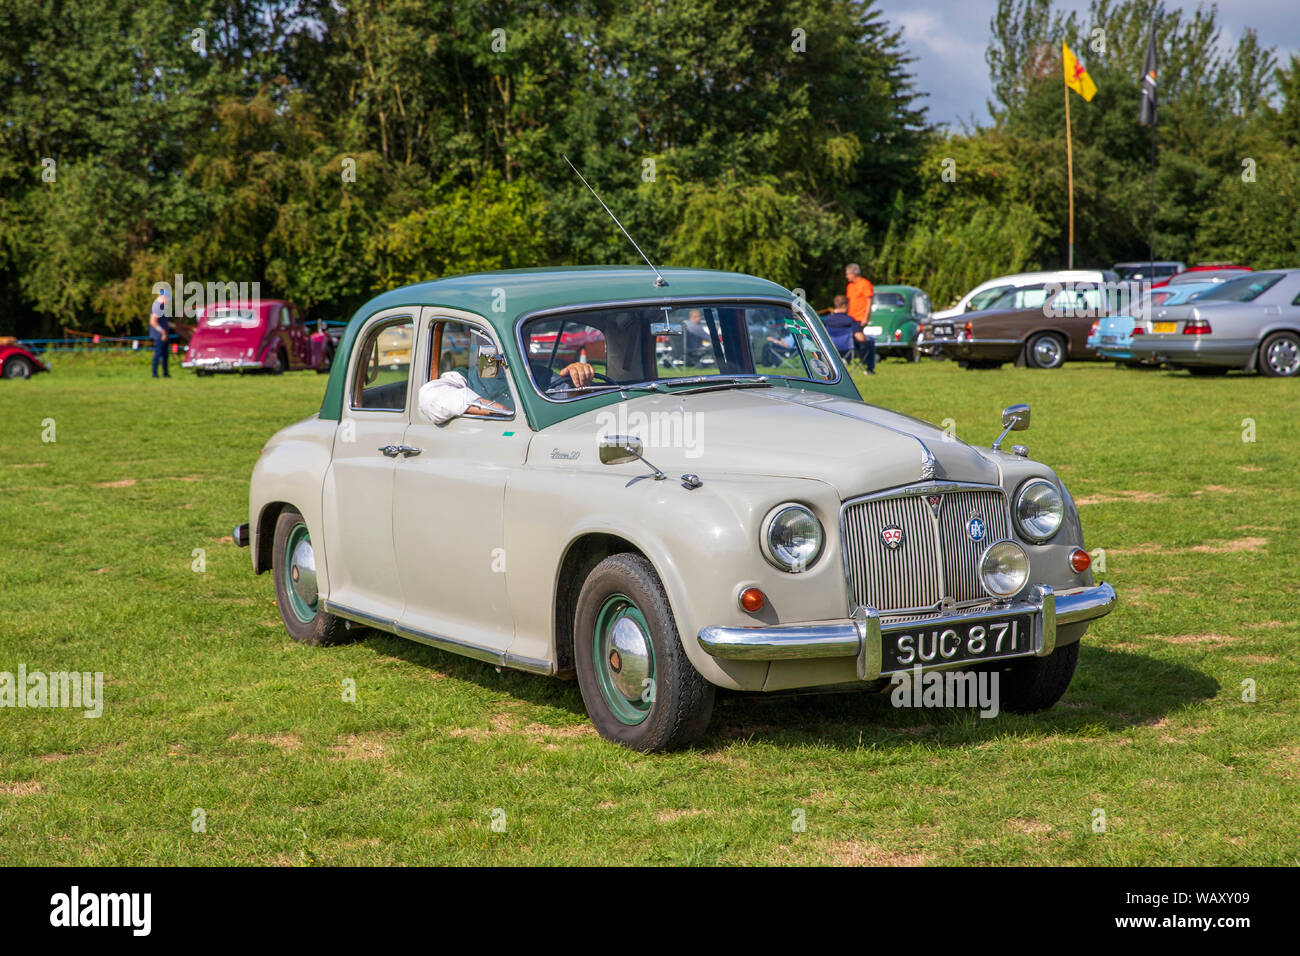 Rover 90, 1956, Reg No: SUC 871, at the Camerton Classic Car Show 11-08-2019 Stock Photo